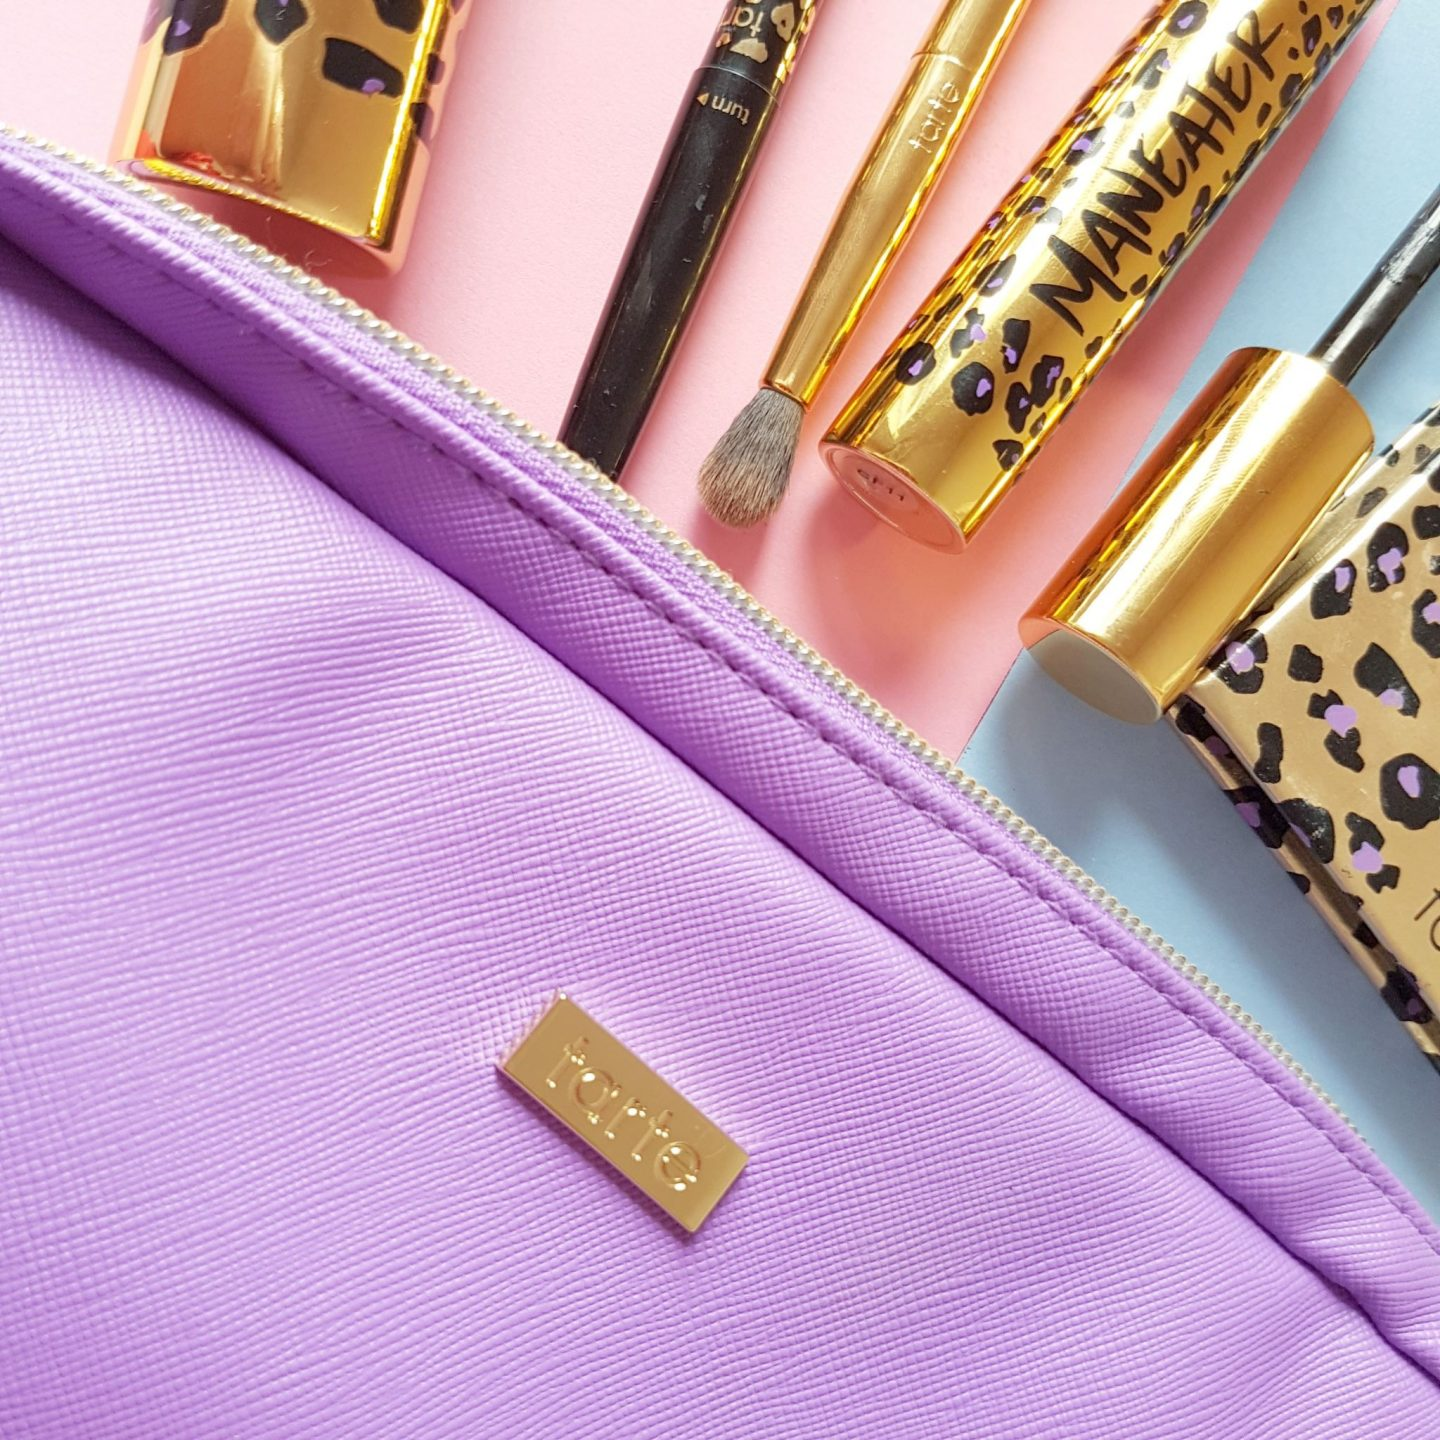 The Tarte Maneater Make-up Collection